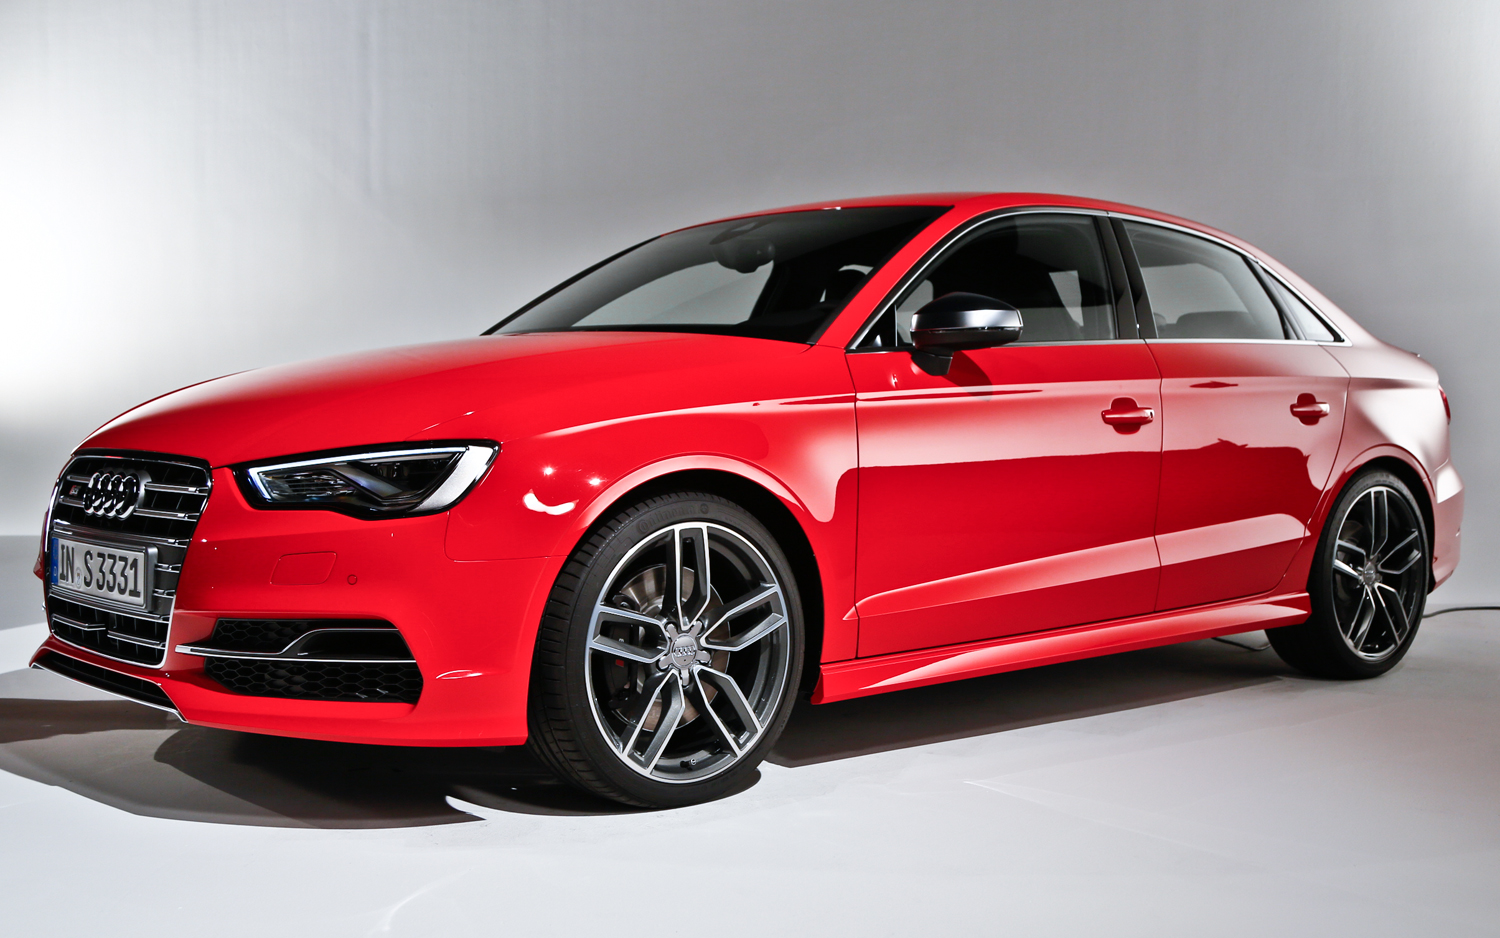 2015 Audi S3 Sedan Red (View 4 of 10)